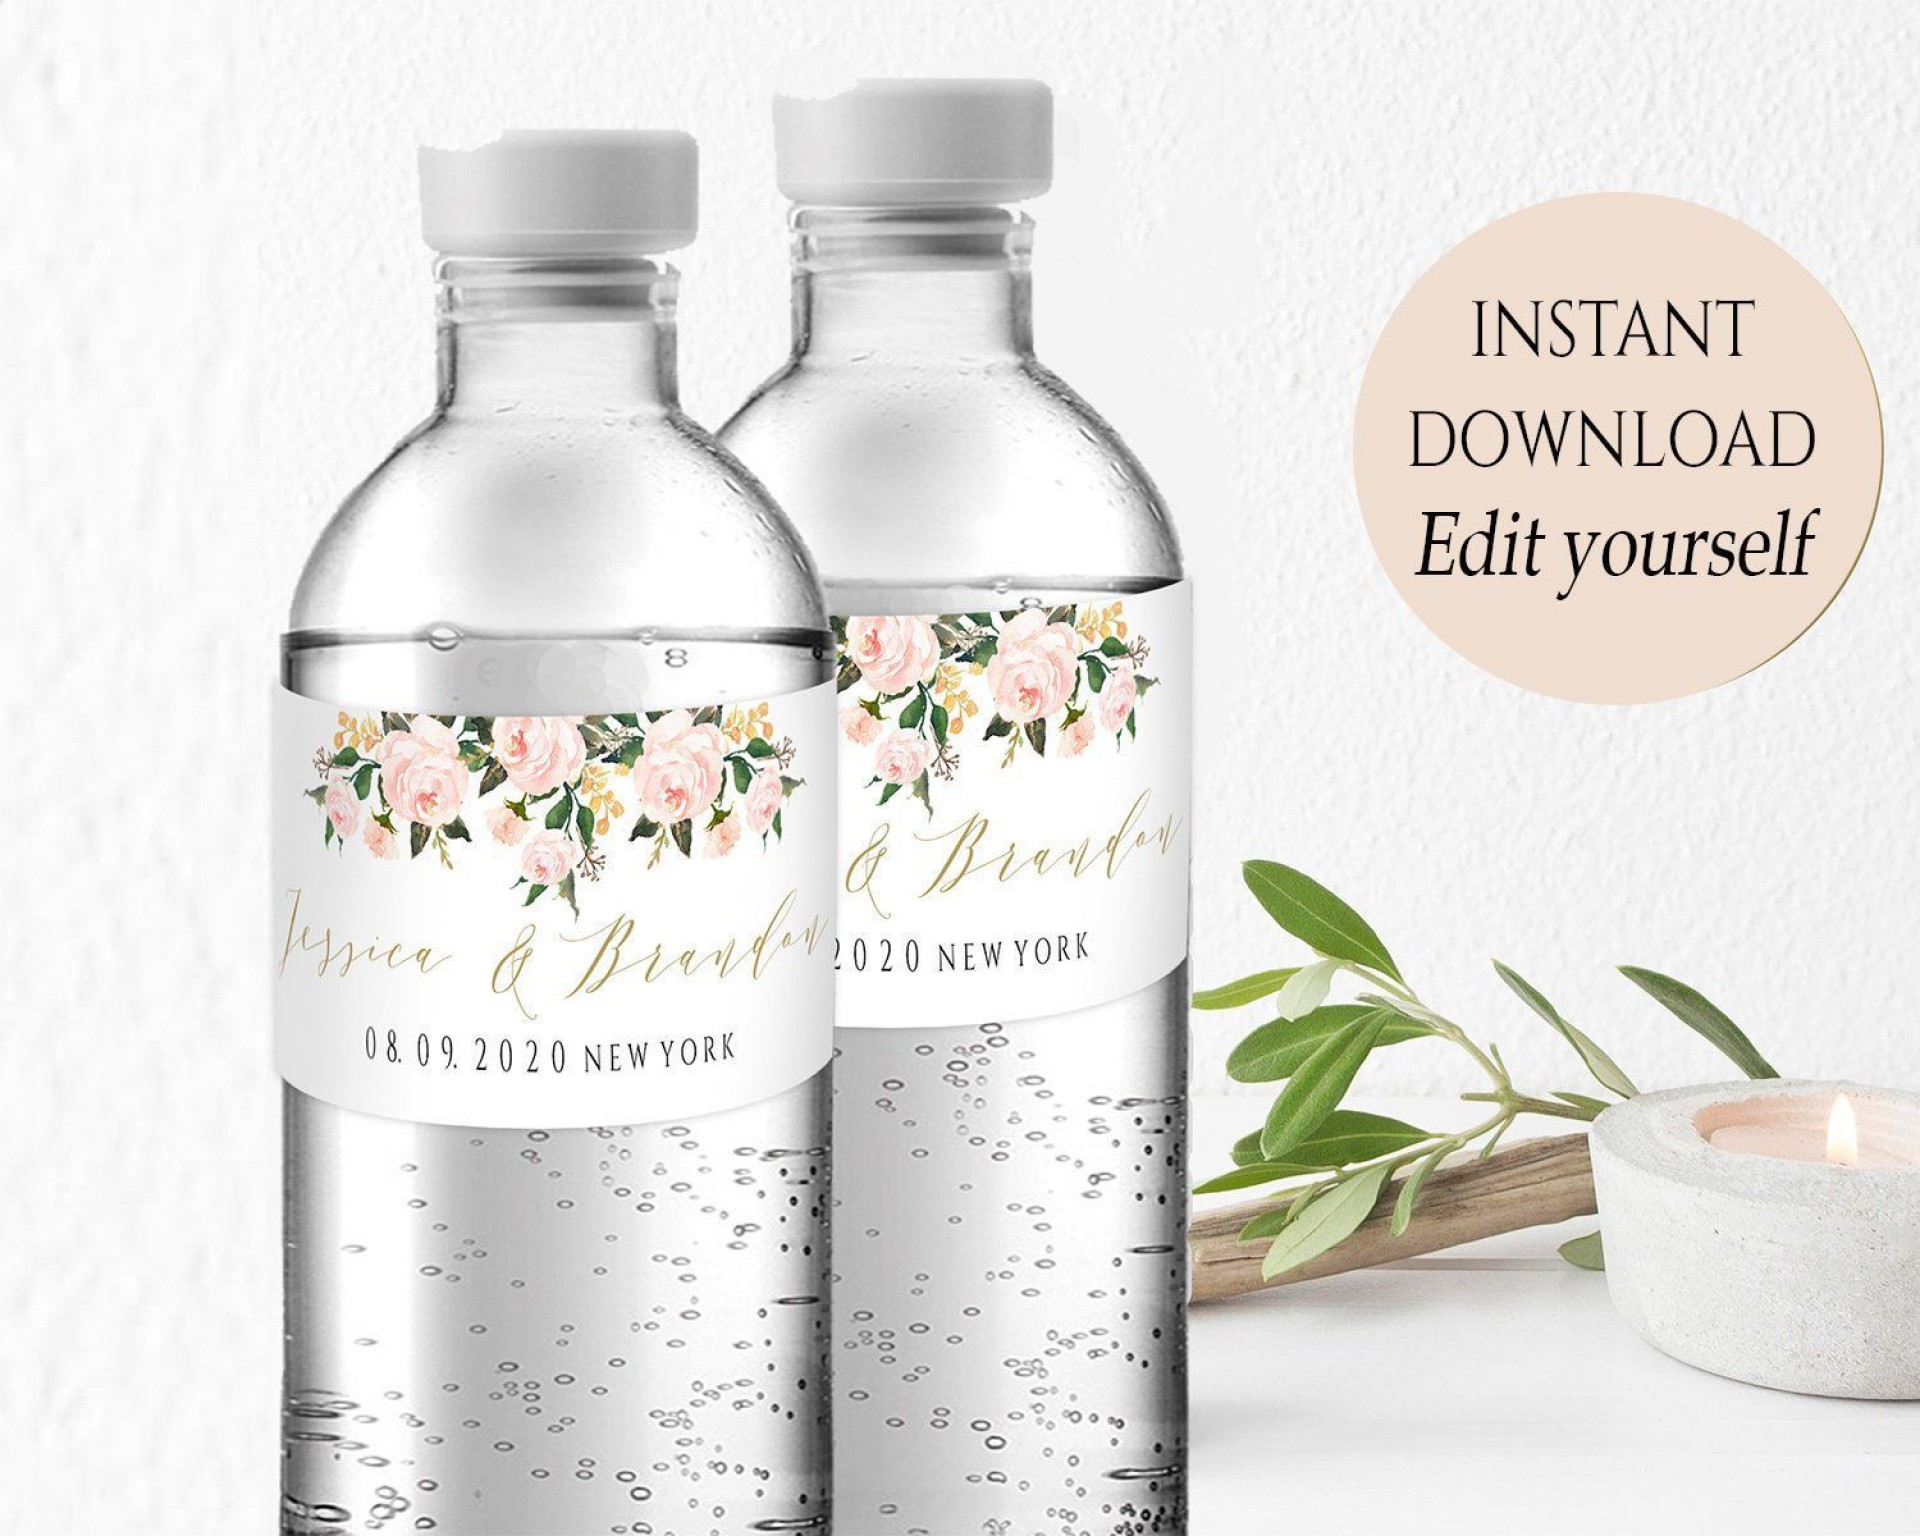 004 Incredible Free Wedding Template For Word Water Bottle Label Image  Labels1920